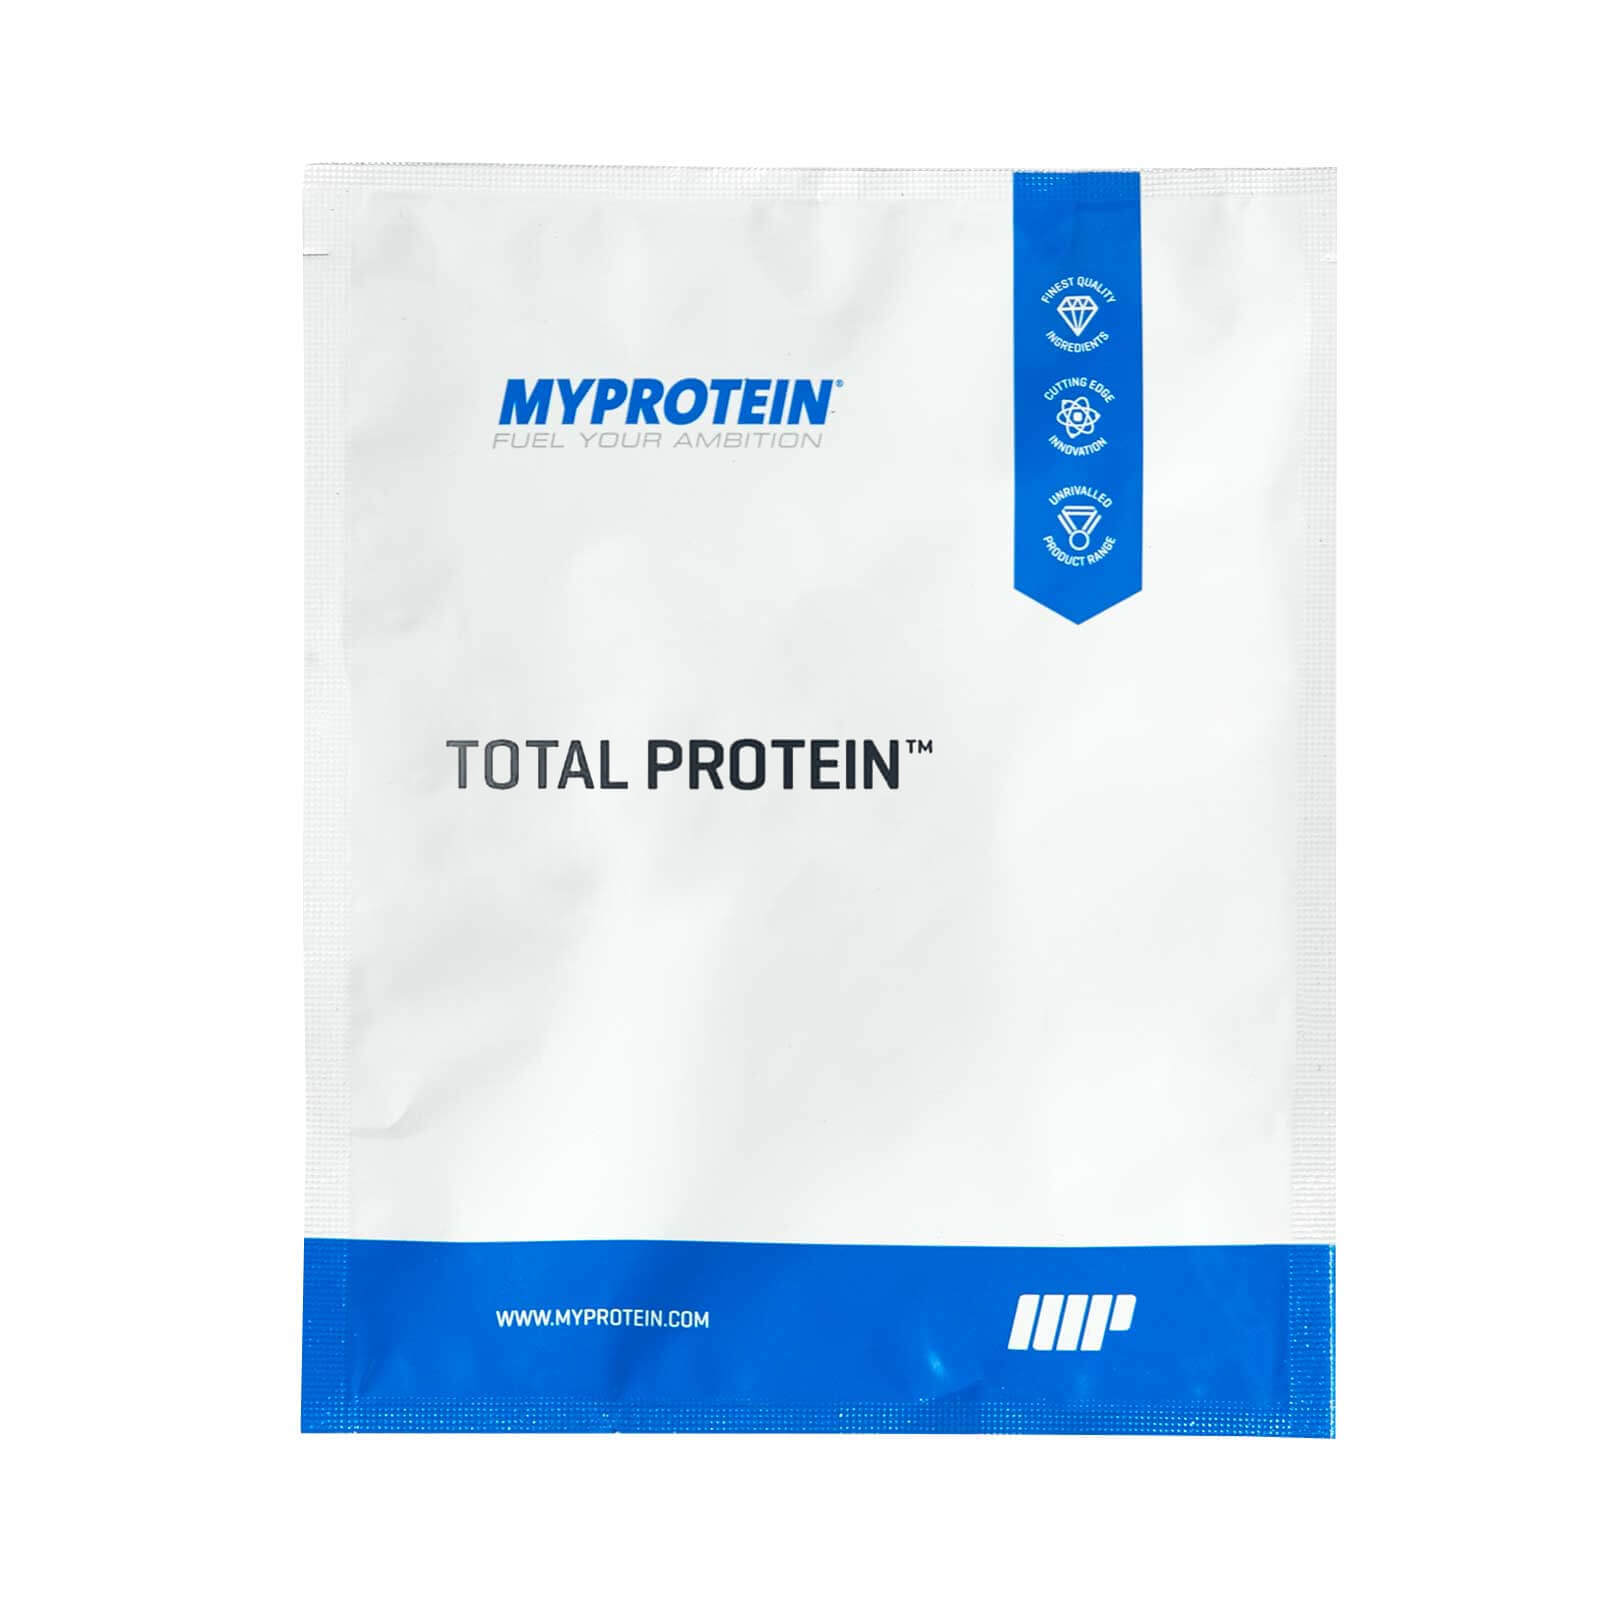 Total Protein (Sample) - Chocolate Mint, 30g